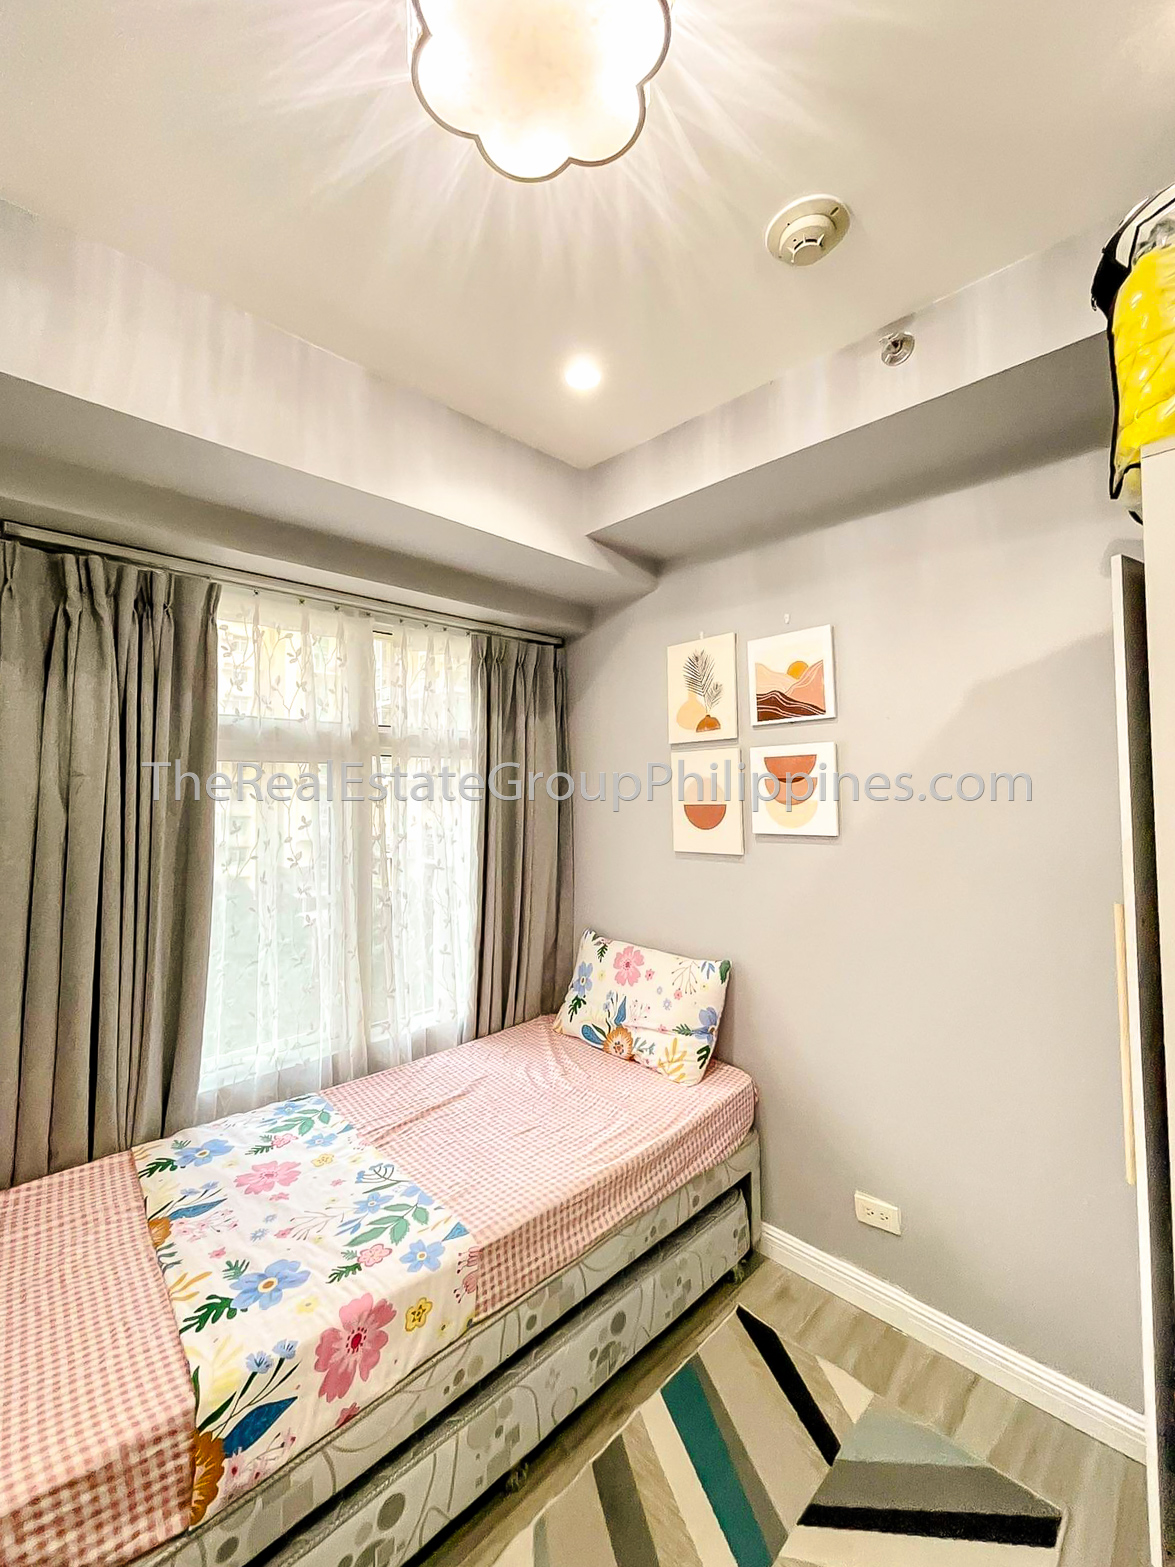 3BR Condo For Sale, Two Serendra, BGC, Taguig City 25M-6